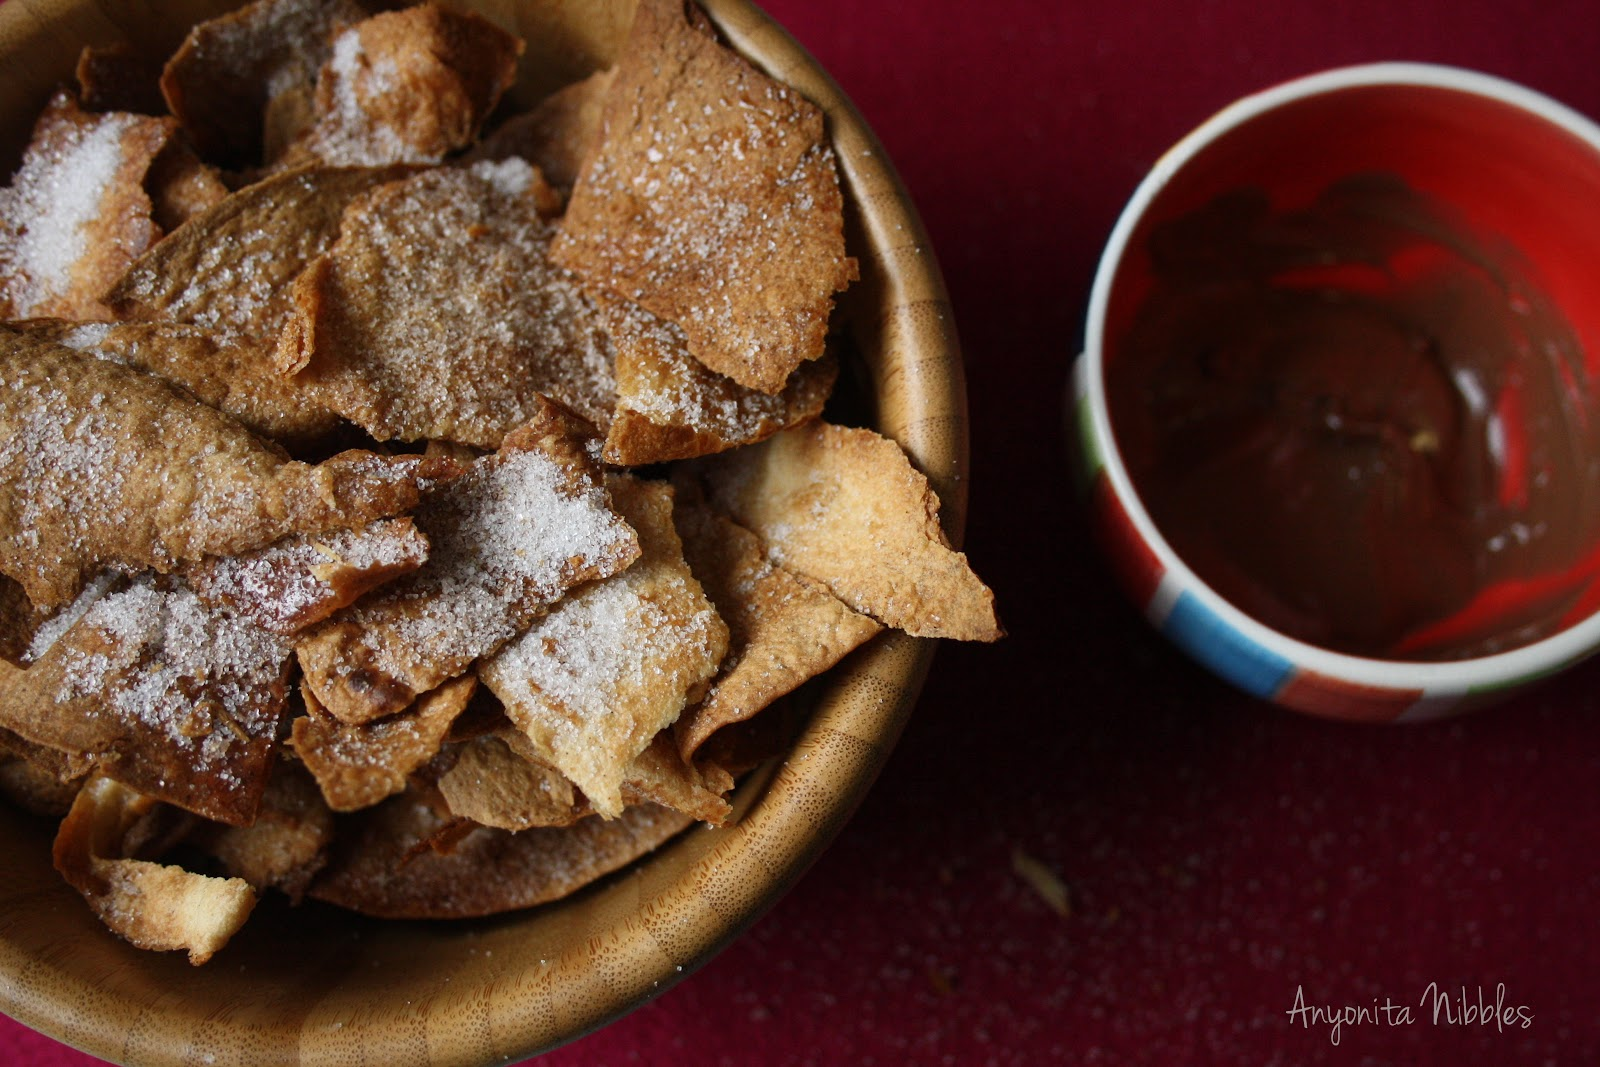 Anyonita Nibbles: Twice Baked Tostada Crisps with Cinnamon Sugar and ...